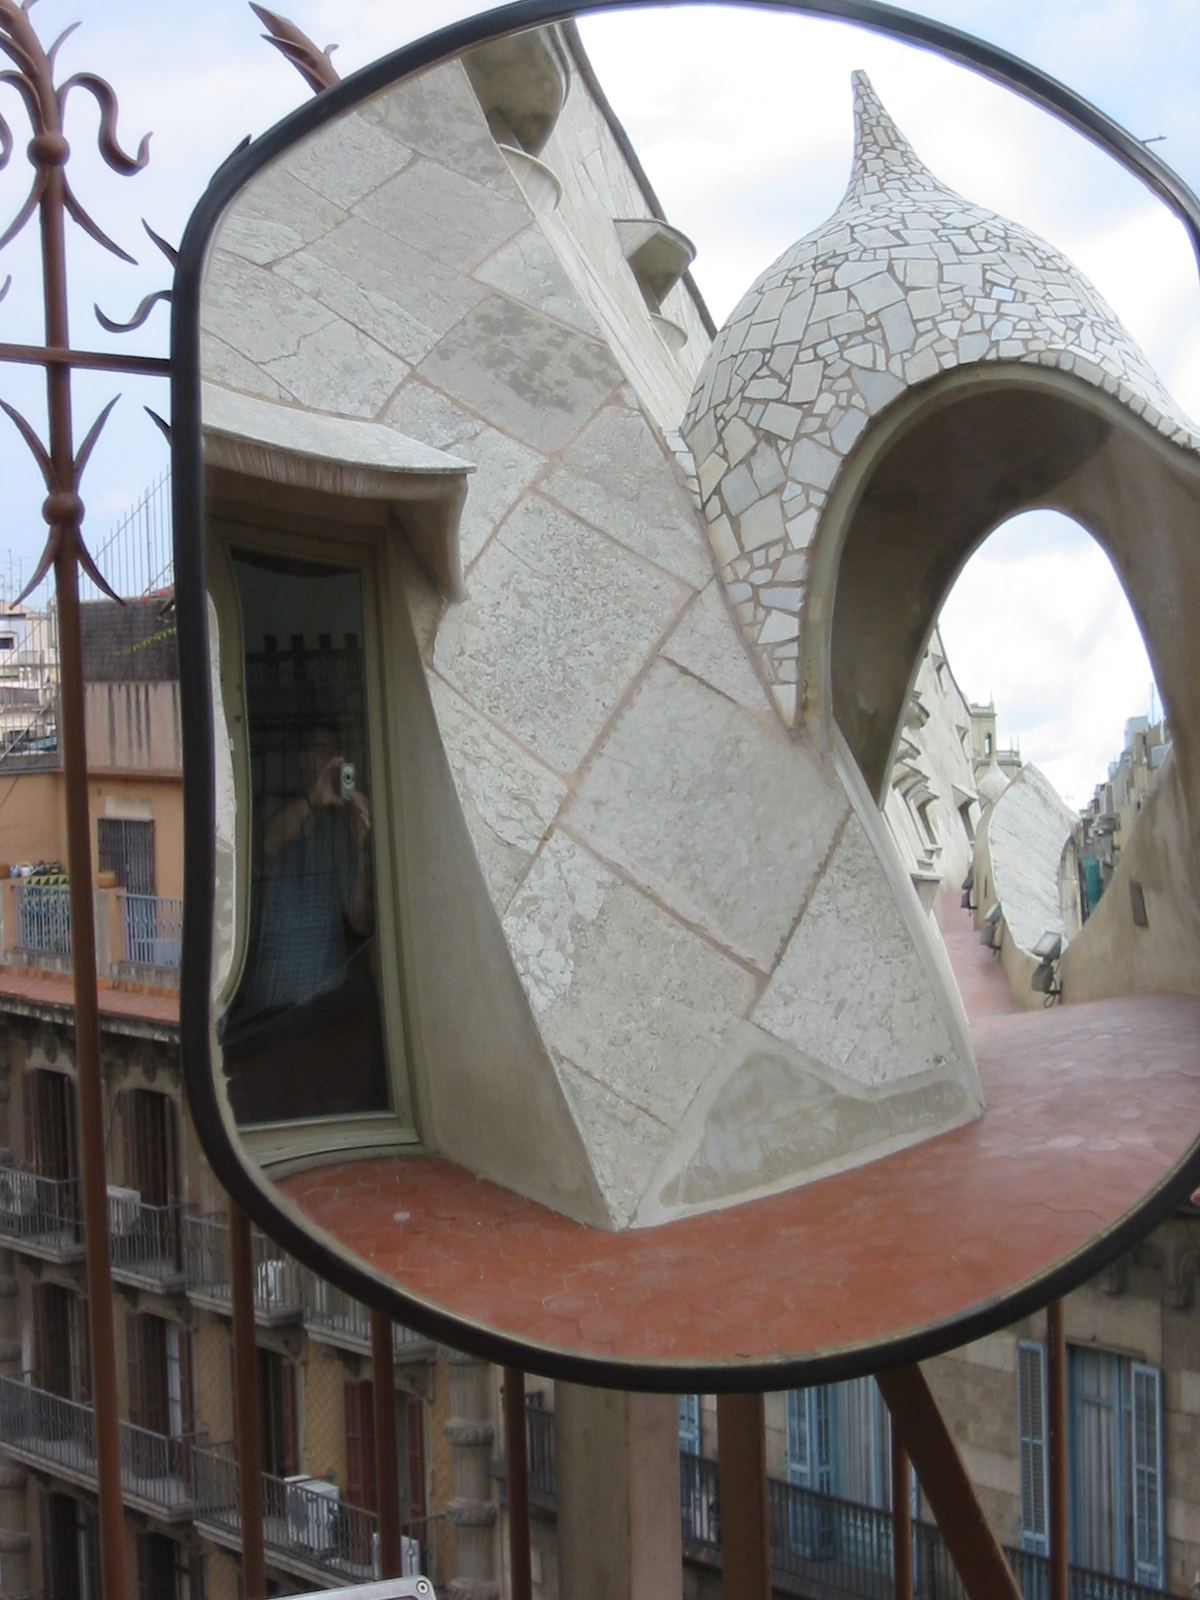 mirror rearview rear-view barcelona gaudi fantasy fantastic shape architecture